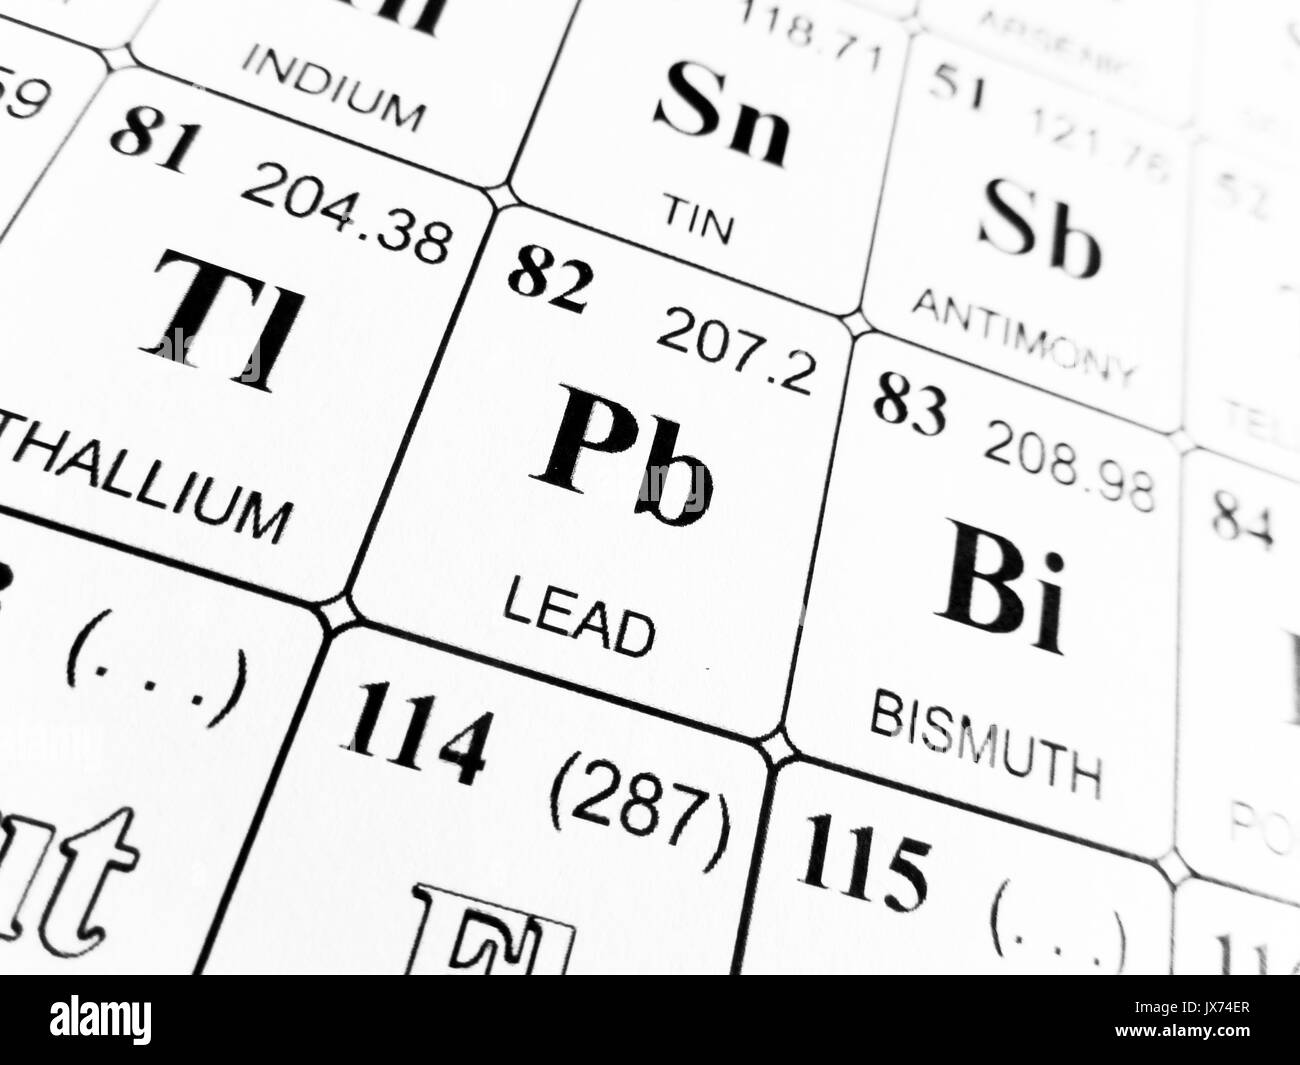 Symbol for lead on periodic table choice image periodic table images tin on periodic table choice image periodic table images symbol for lead on periodic table images gamestrikefo Gallery